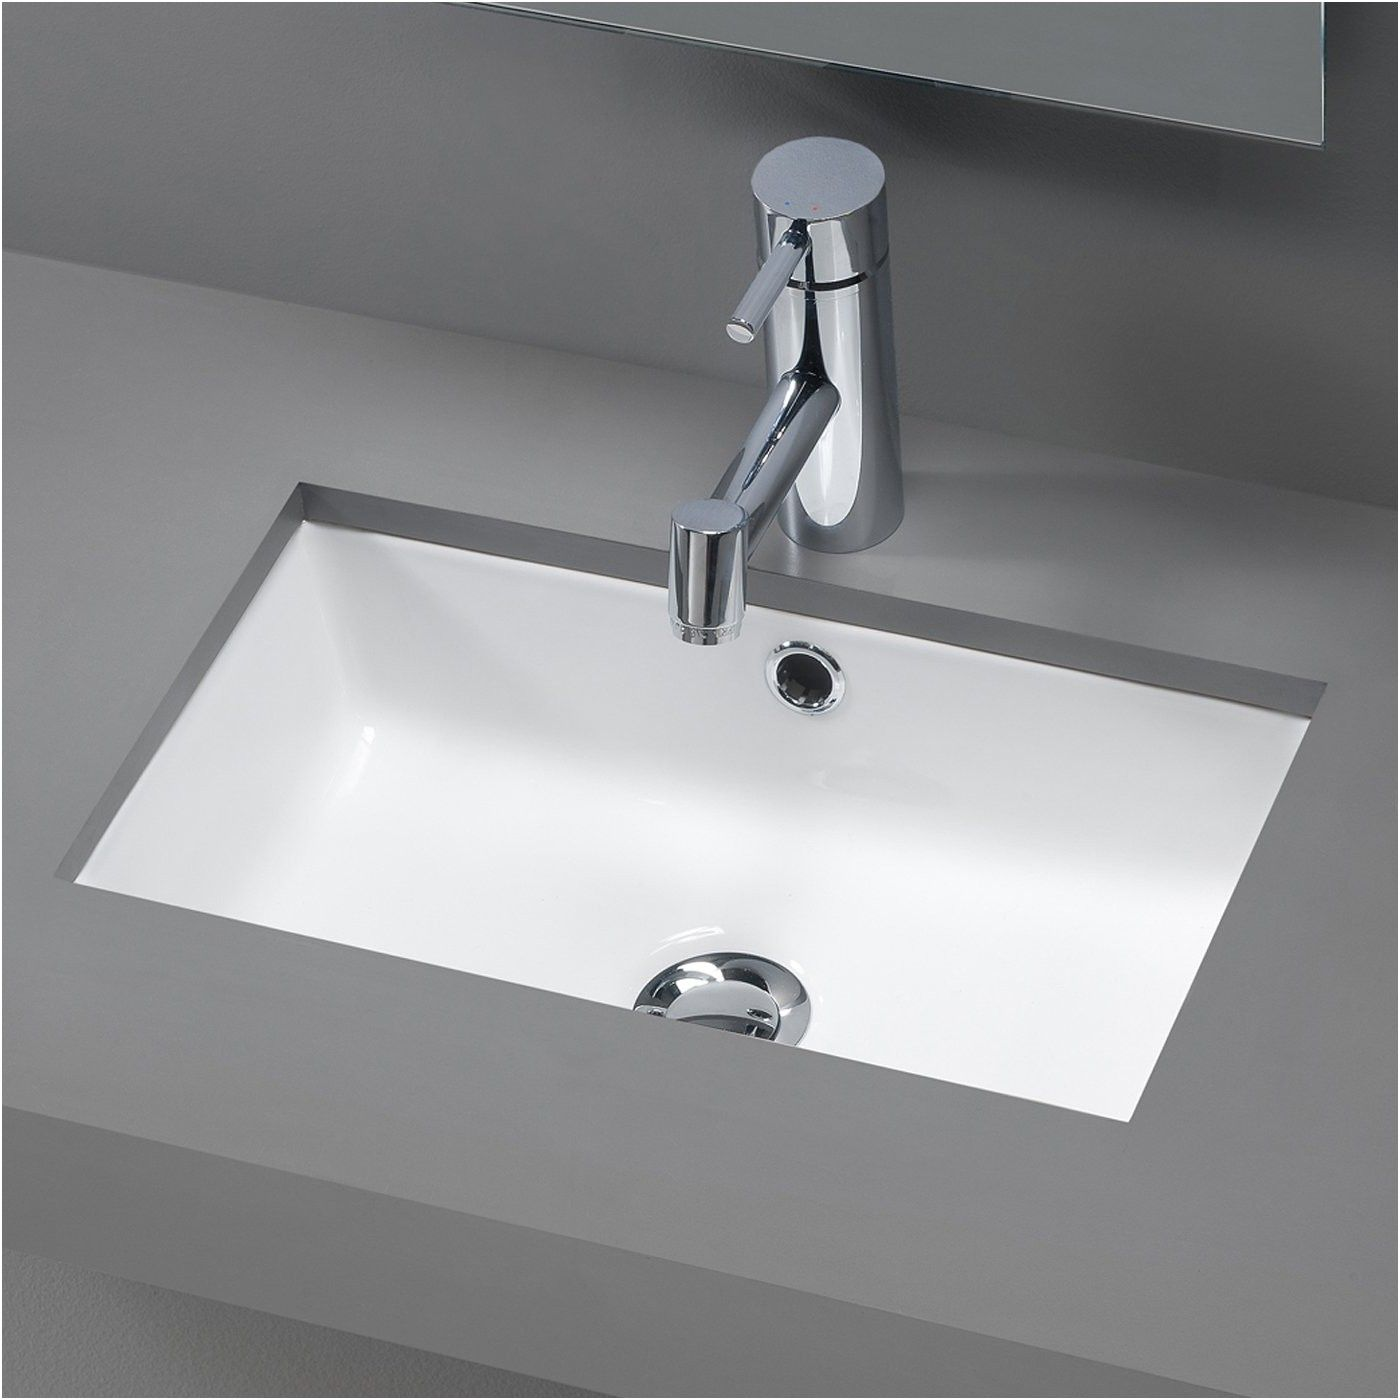 Small Rectangular Undermount Bathroom Sink Interior Rectangular From Narrow Undermount Ba Small Undermount Bathroom Sink Undermount Bathroom Sink Bathroom Sink